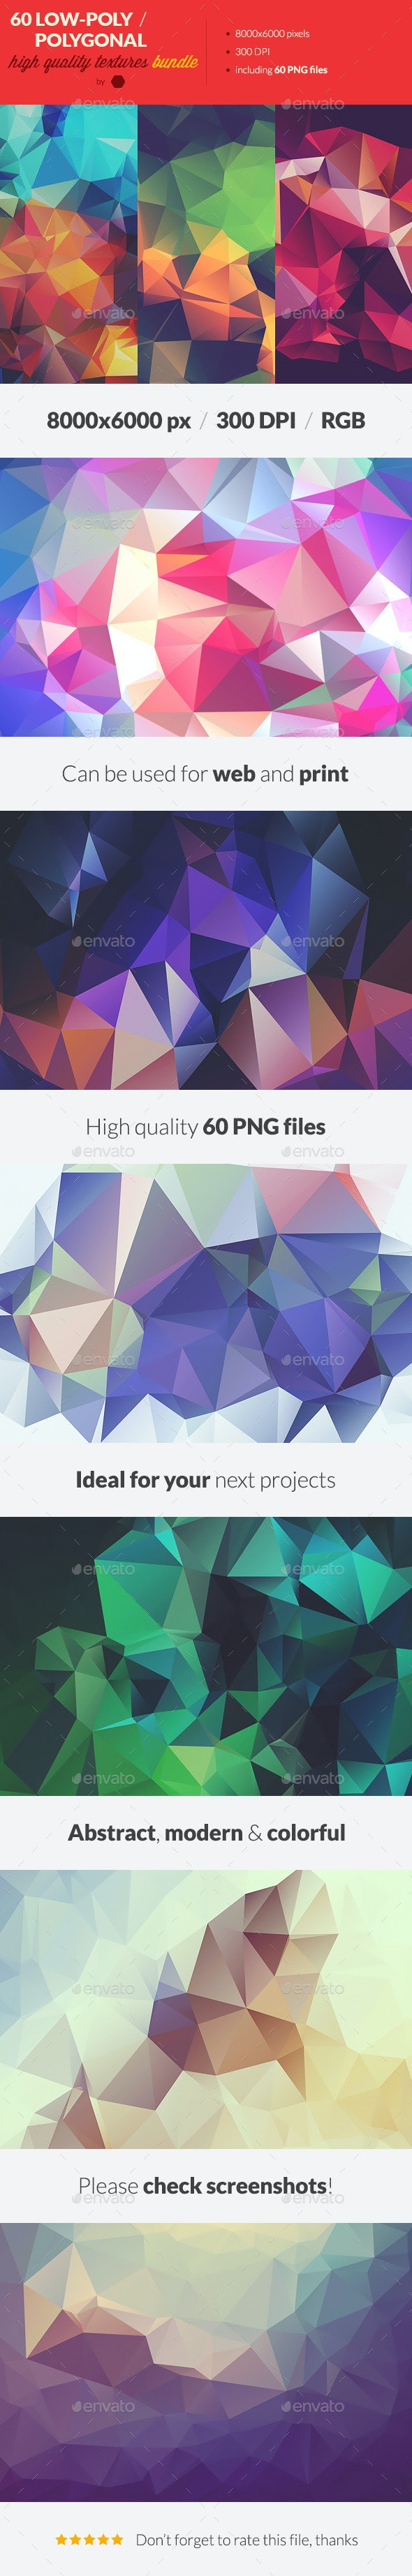 60 Low-Poly Polygonal Background Textures Bundle - Abstract Backgrounds